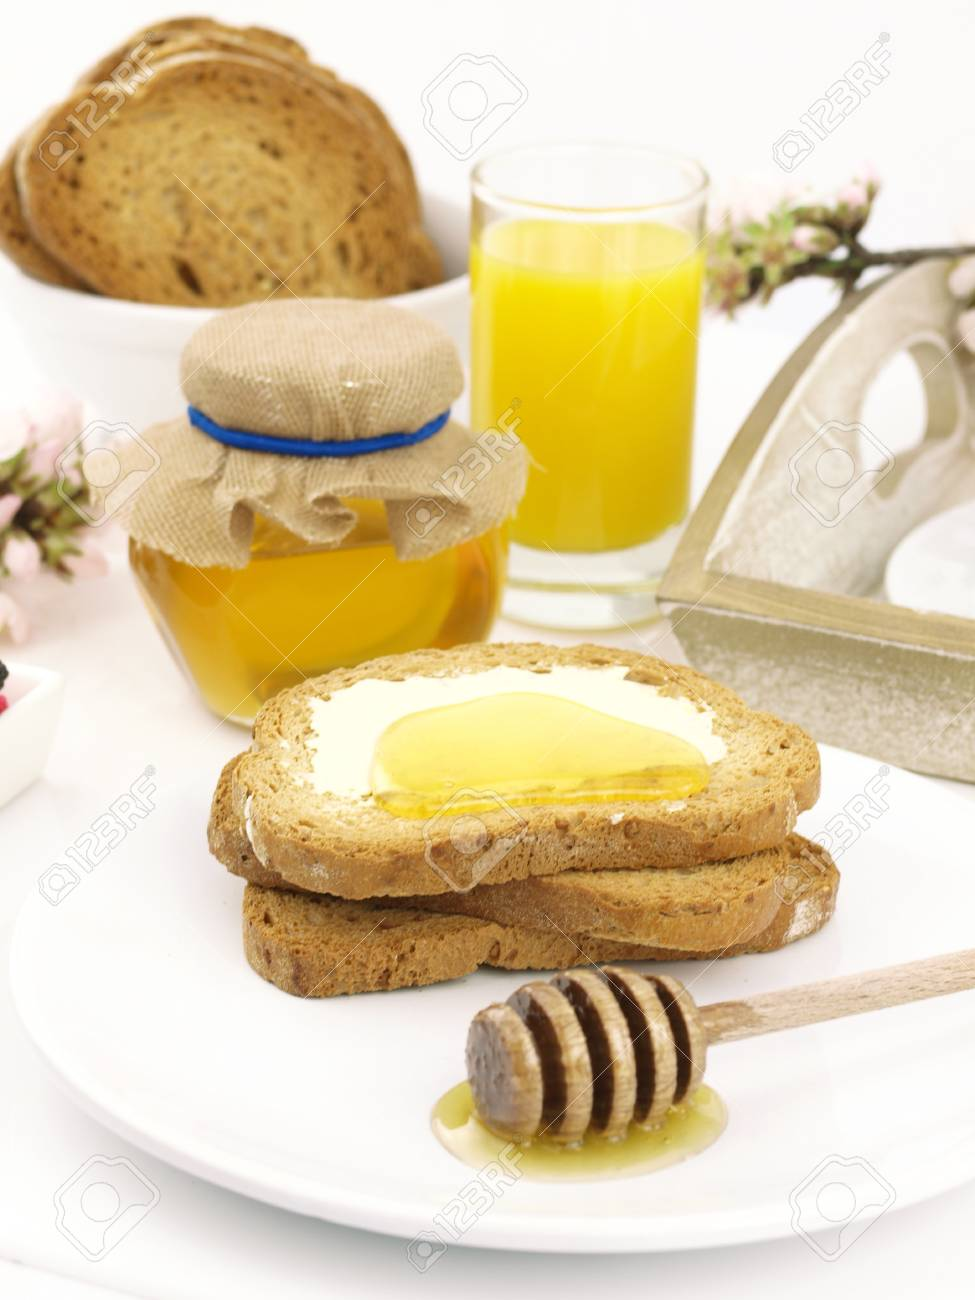 Honey on toast, with a breakfast set background Stock Photo - 9102738